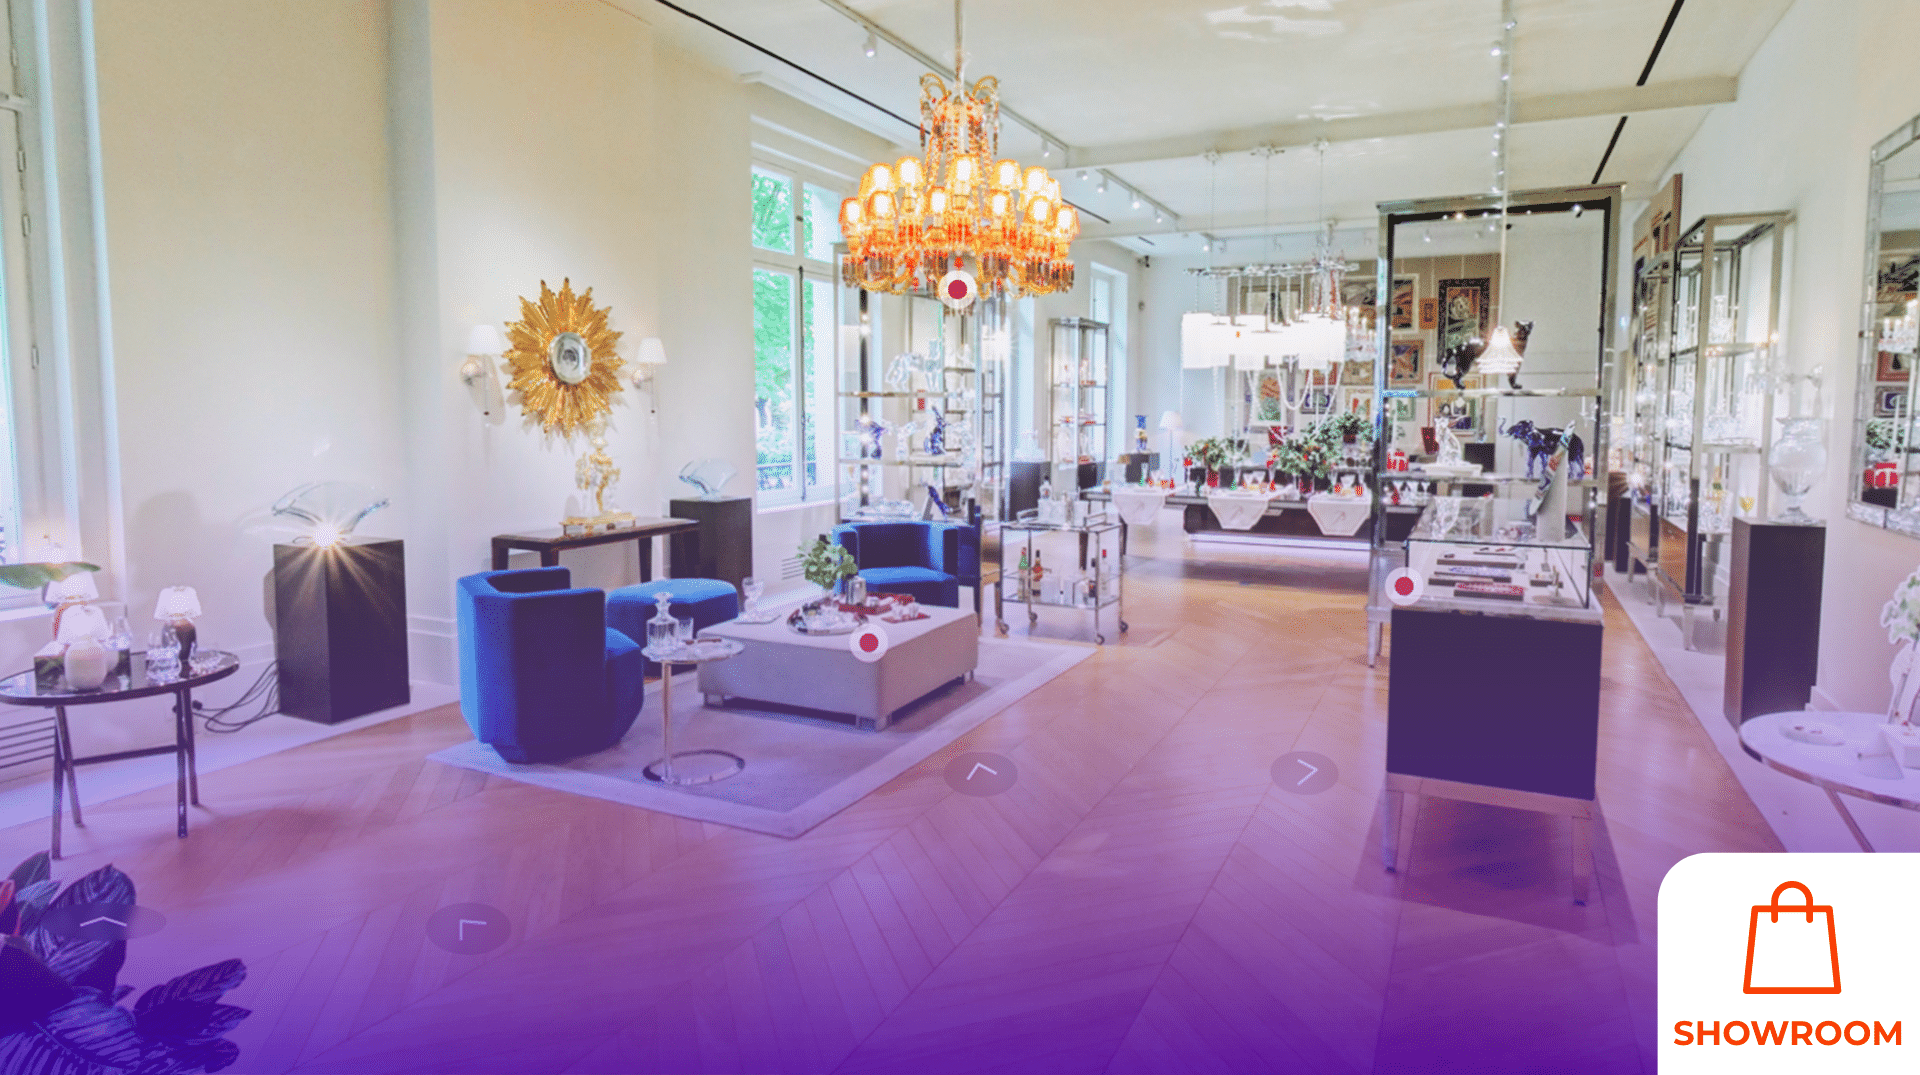 baccarat-book-showroom-virtuel